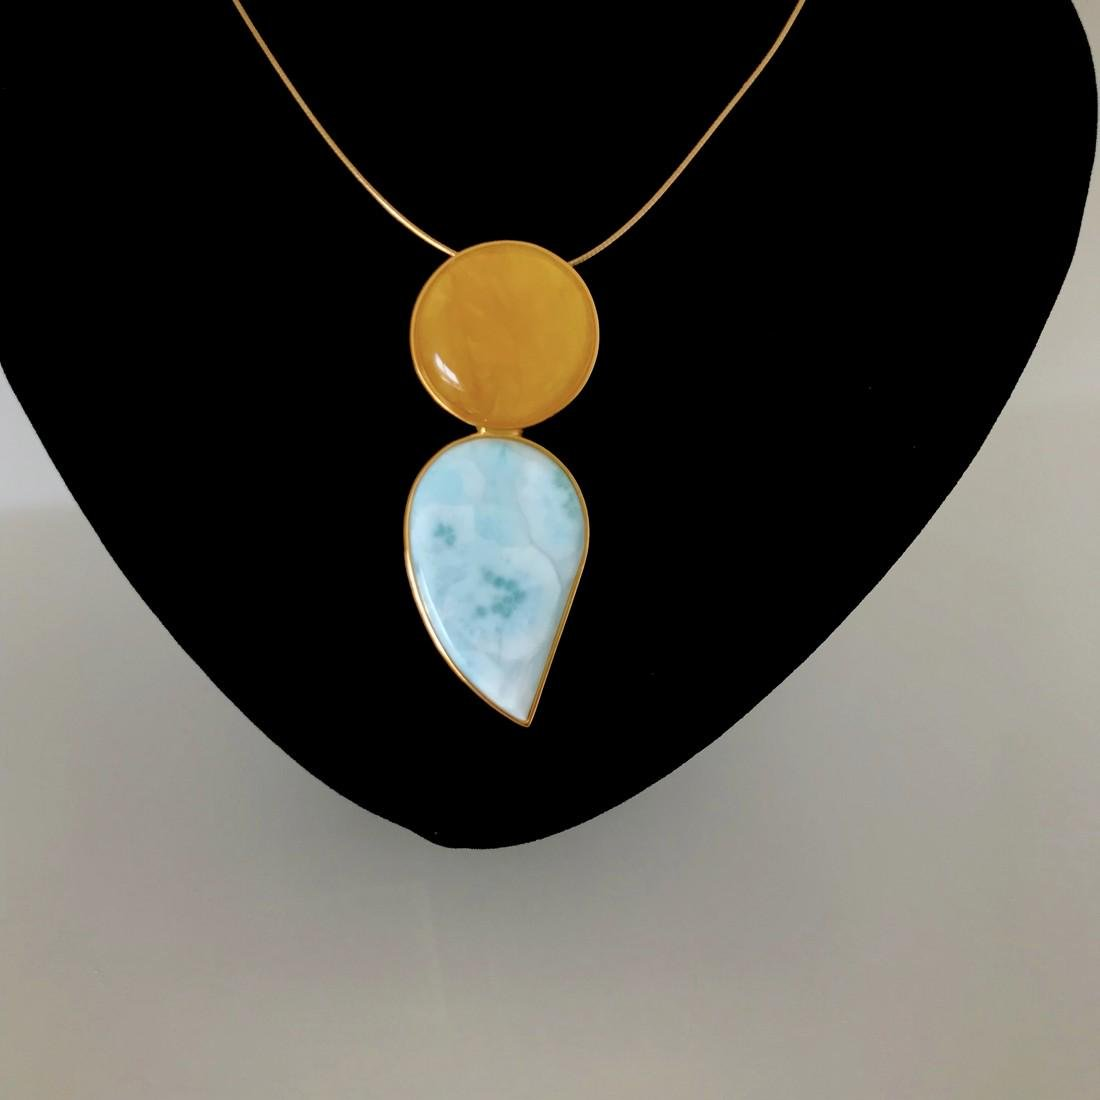 Pendant Baltic amber & Larimar in gilded silver